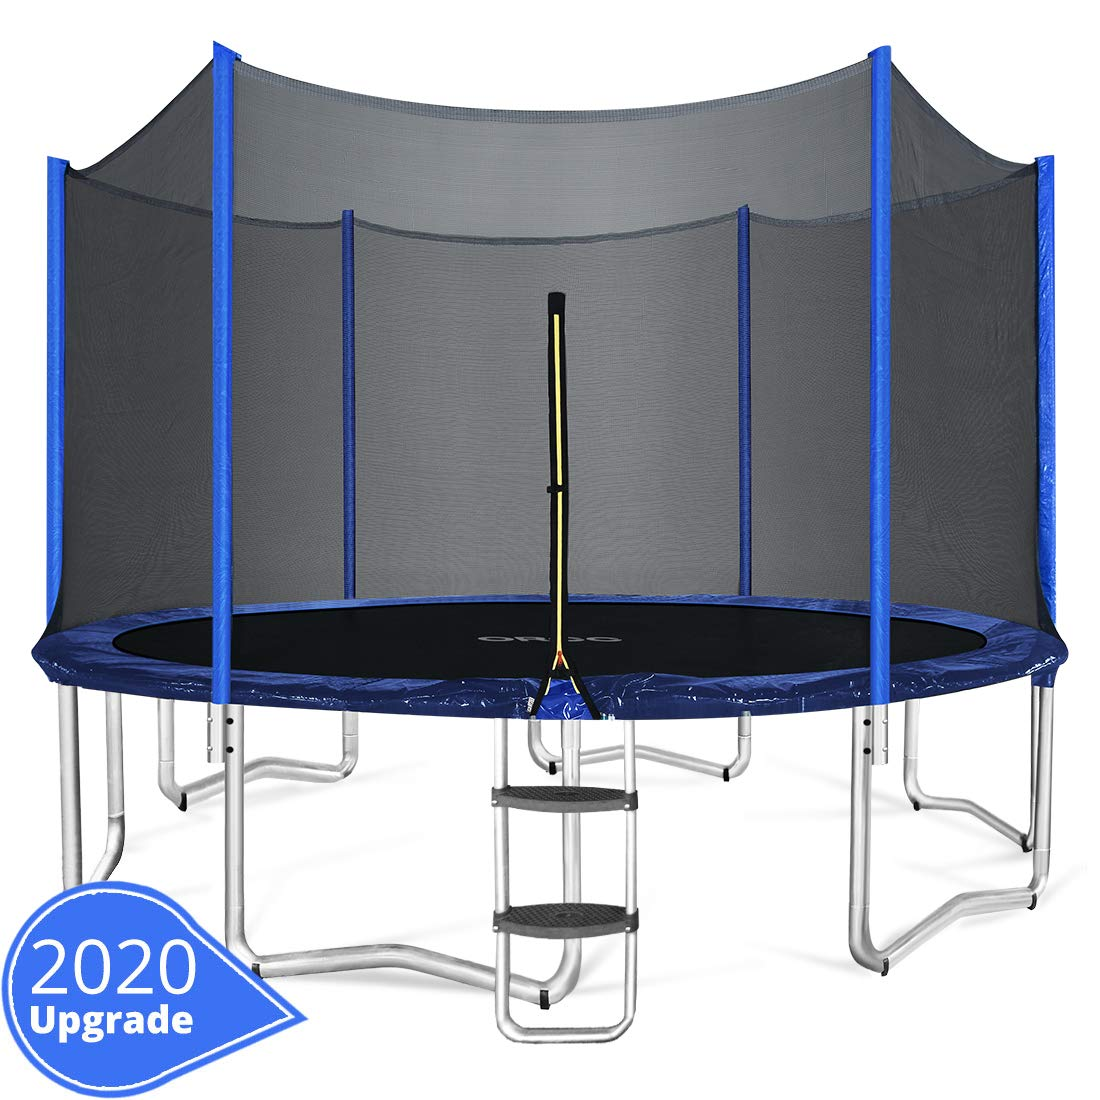 ORCC Trampoline – Best for Outdoor Activities